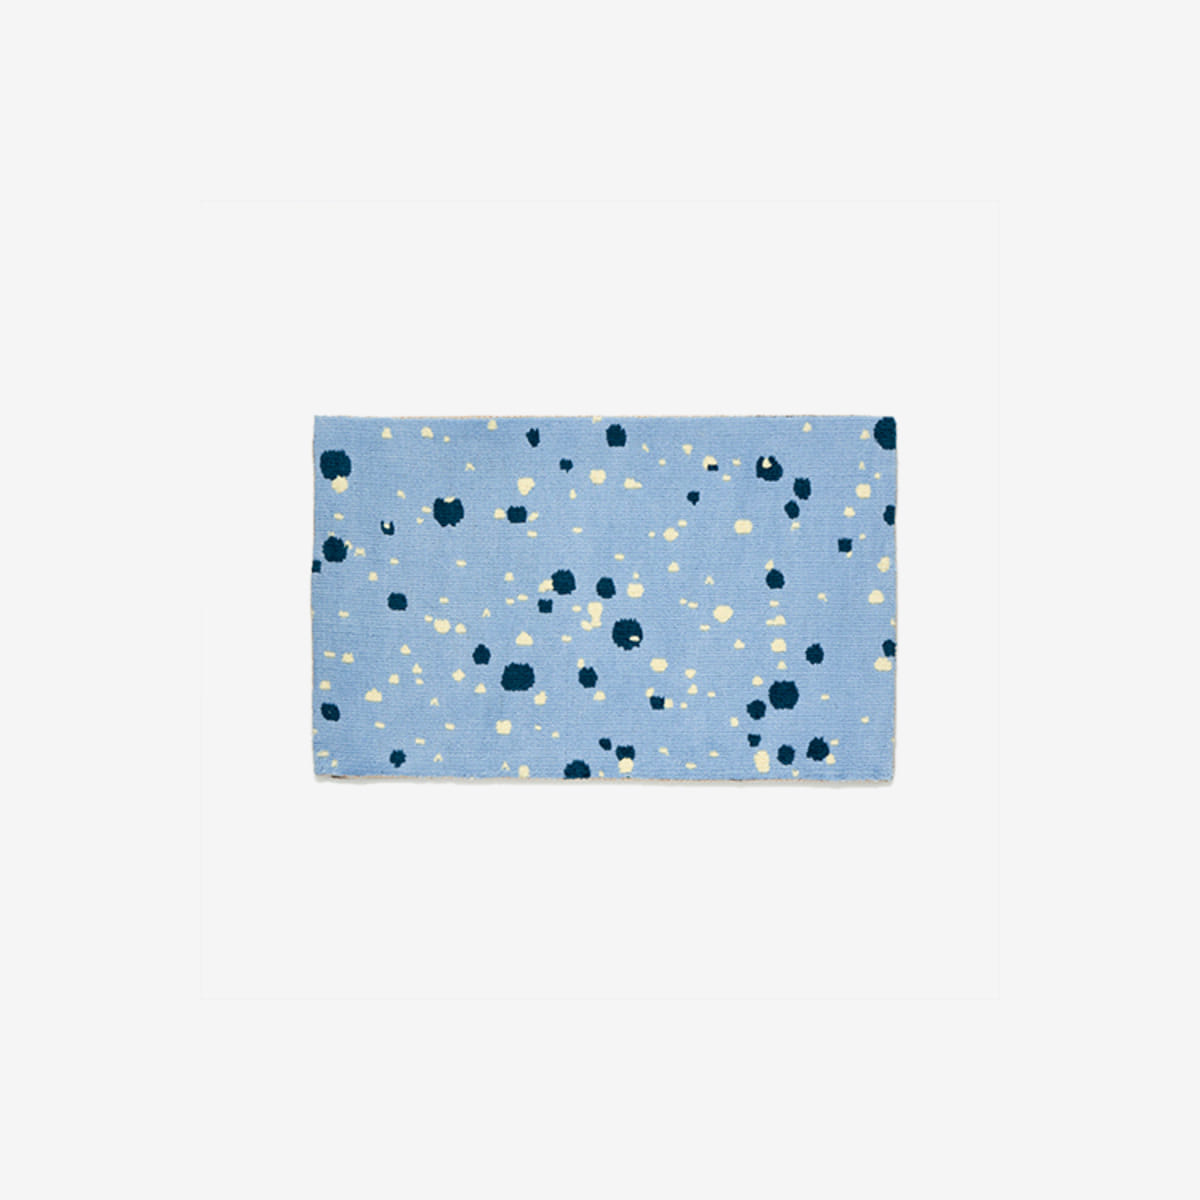 Bloom blue mat